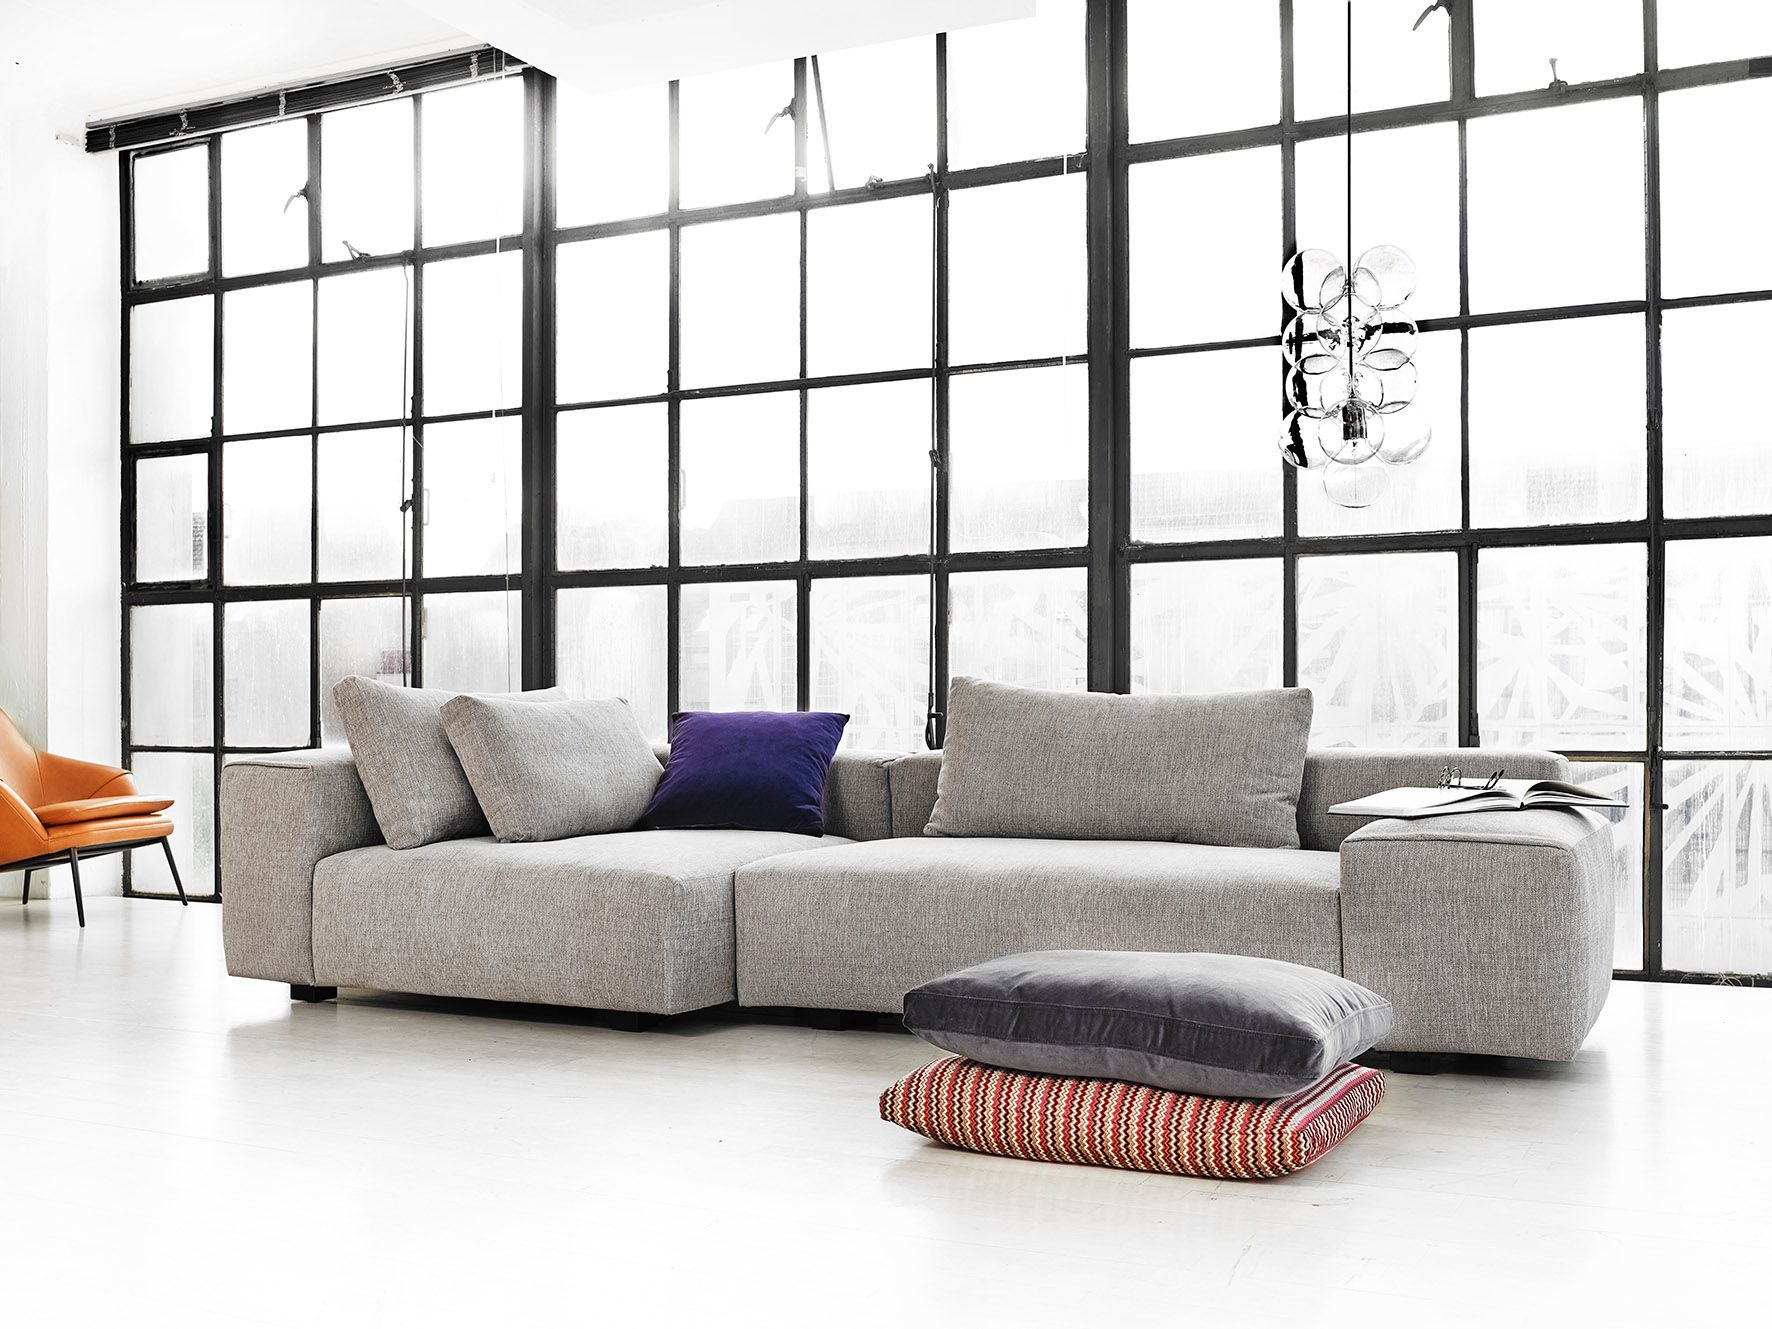 Raft sofa wendelbo design danish design 365 north henrik discover all the information about the product modular sofa contemporary leather fabric raft by north wendelbo and find where you can buy it parisarafo Gallery